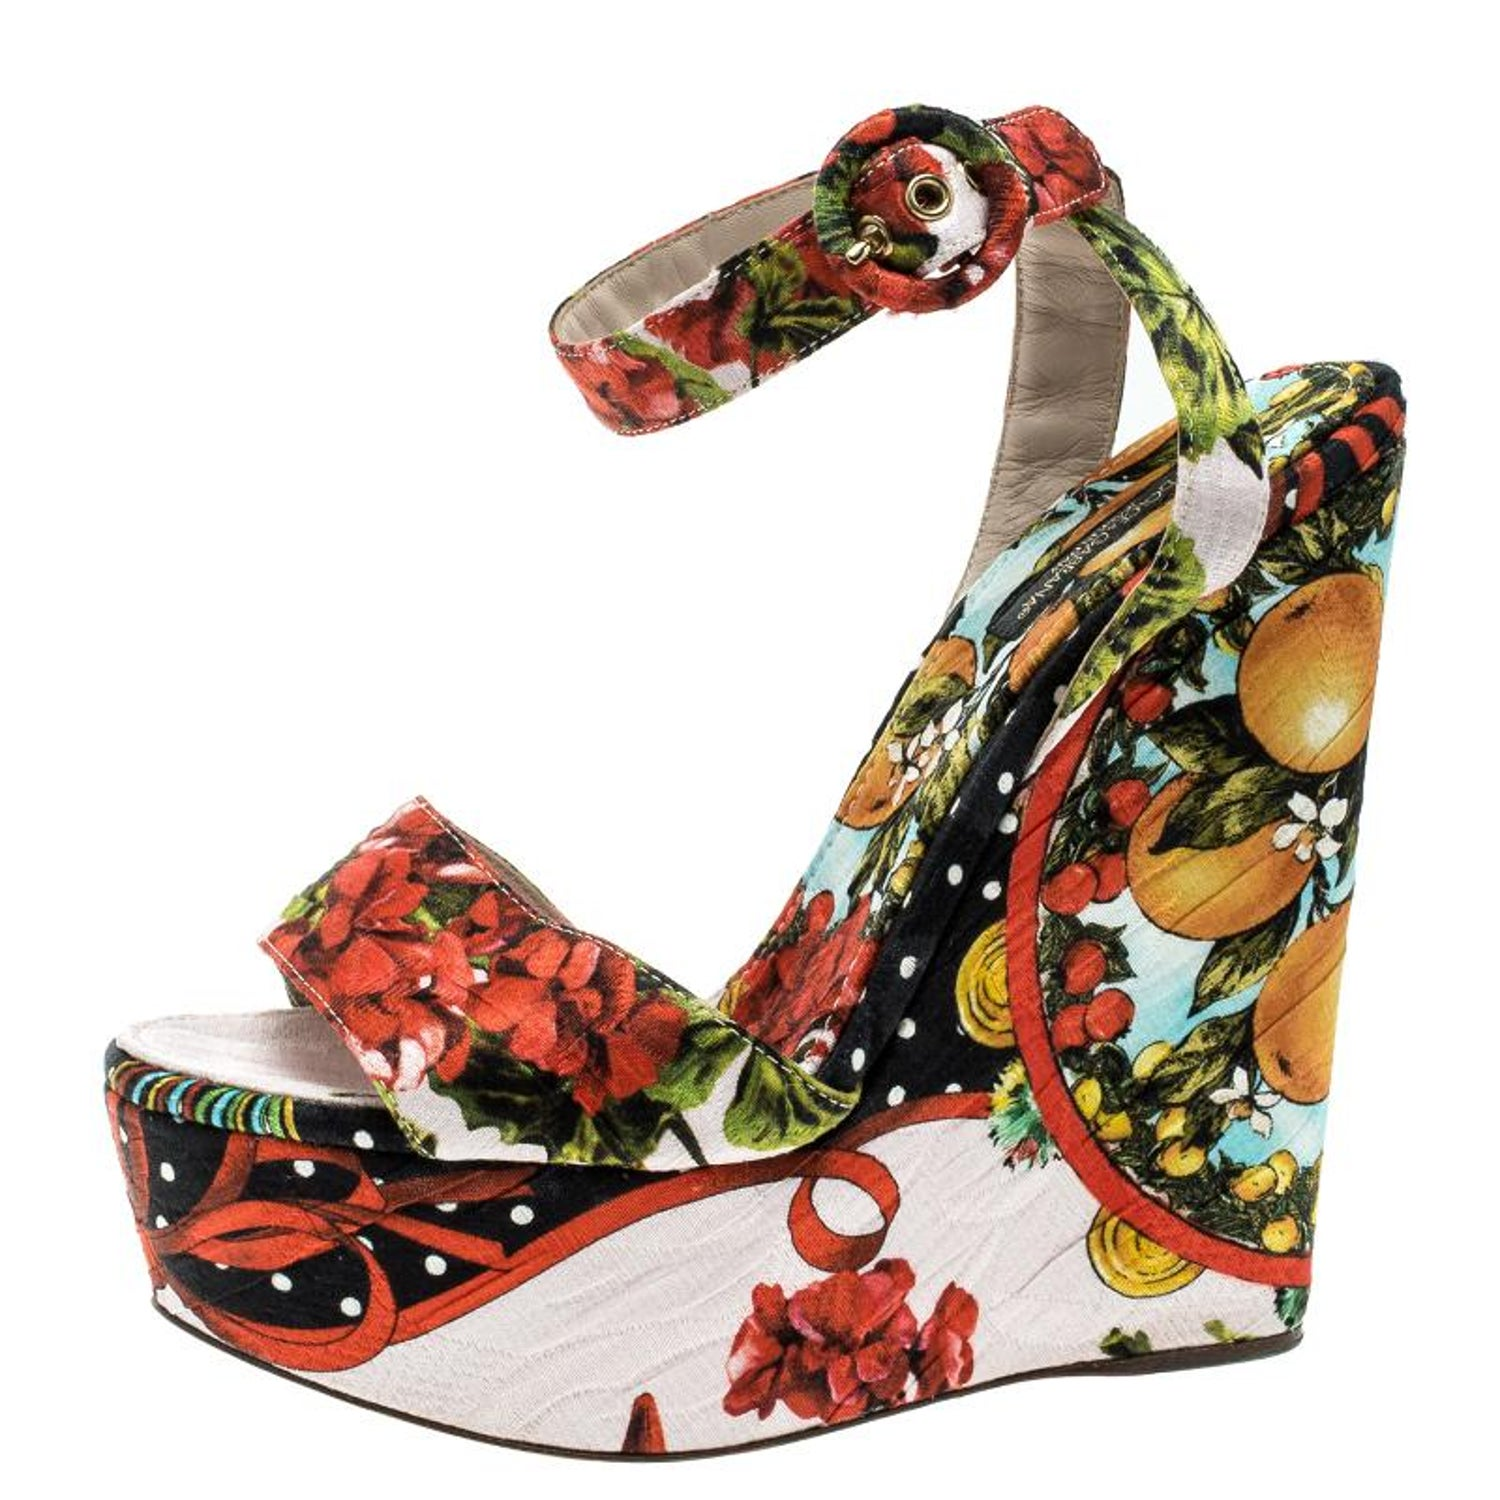 bf760ad523799 Dolce and Gabbana Multicolor Printed Brocade Peep Toe Ankle Wrap Wedge  Sandals S at 1stdibs